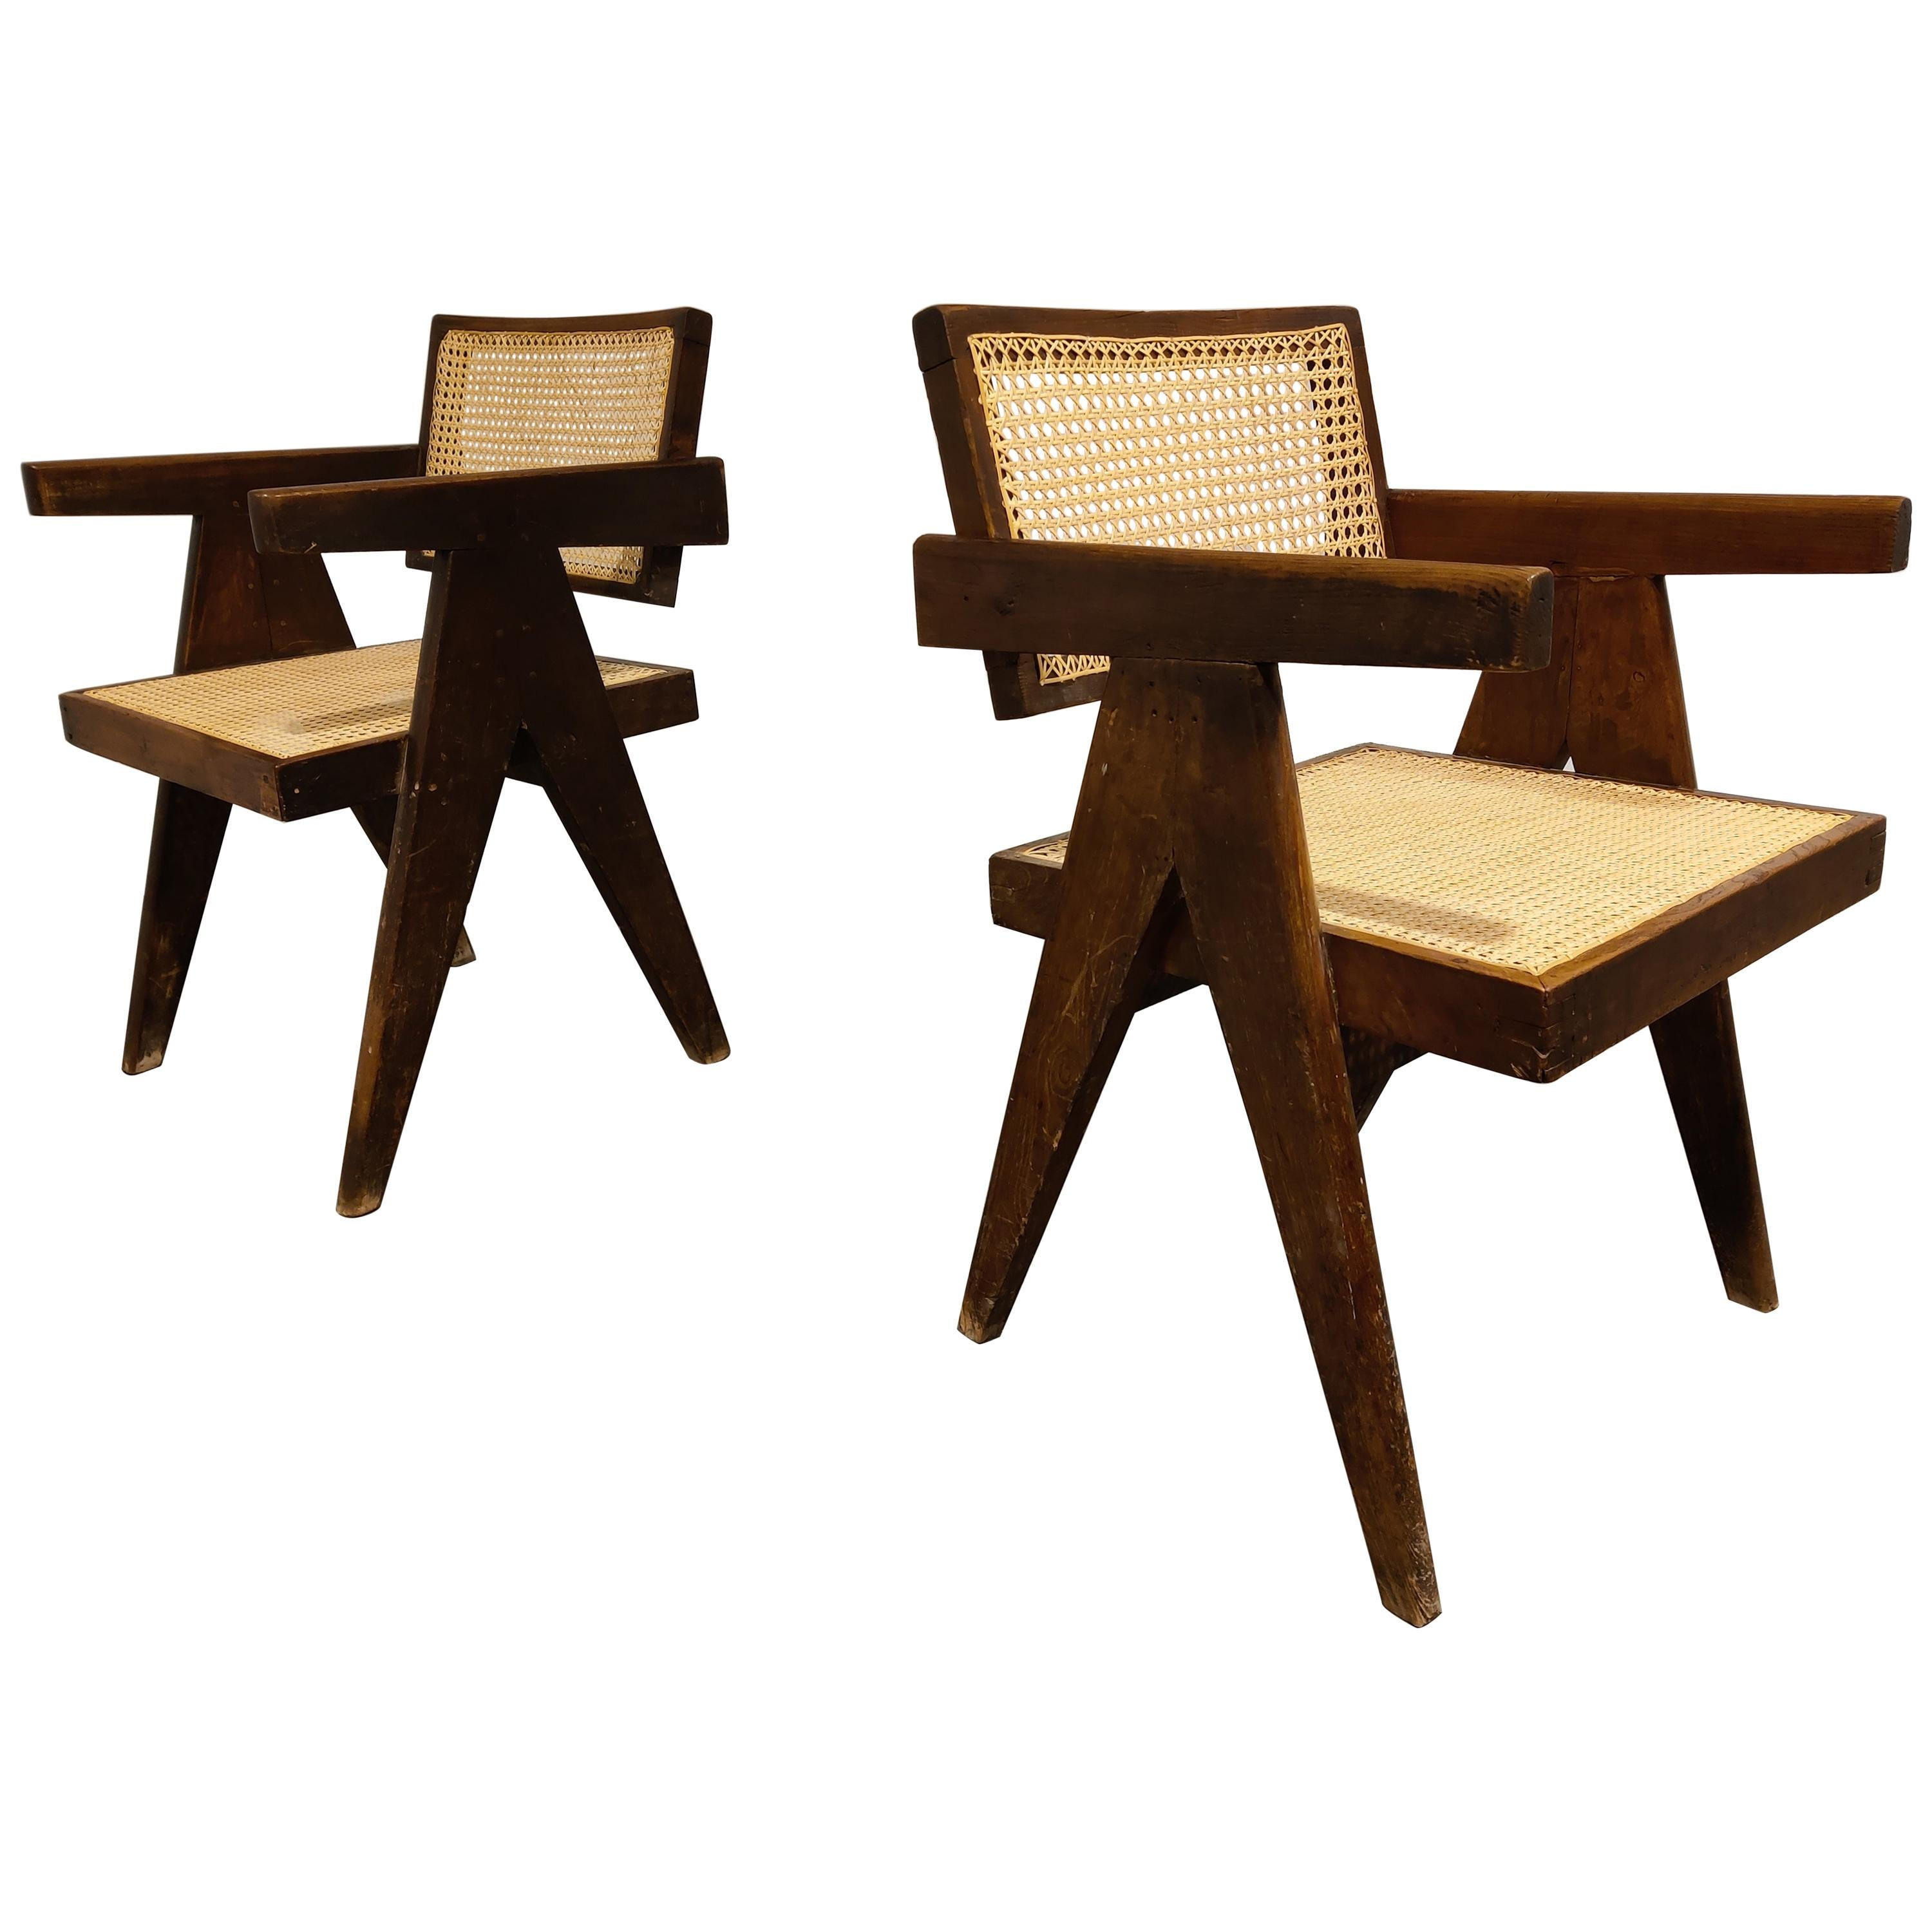 Pair of Pierre Jeanneret Chandigarh Office Cane Chairs, 1950s